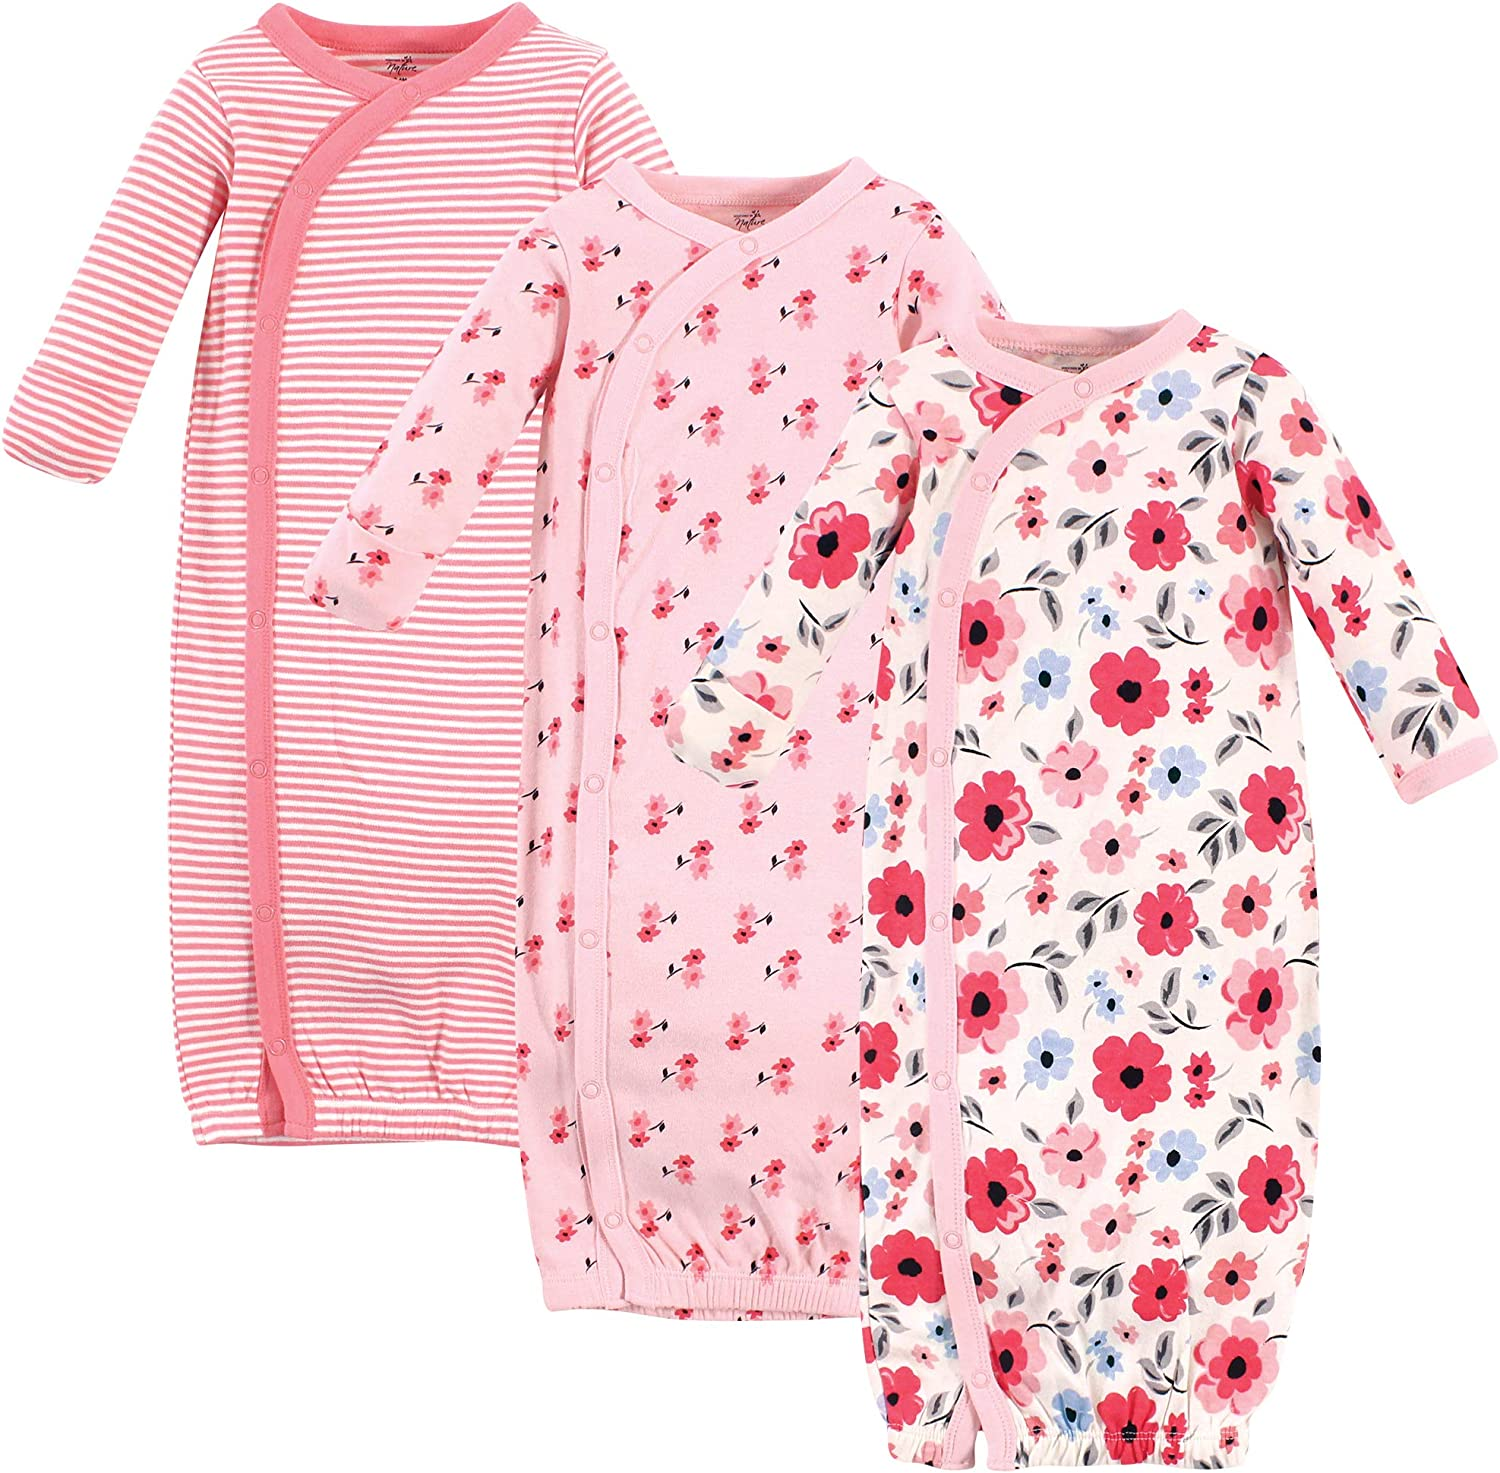 Touched by Nature Baby Organic Cotton Kimono Gowns: Clothing